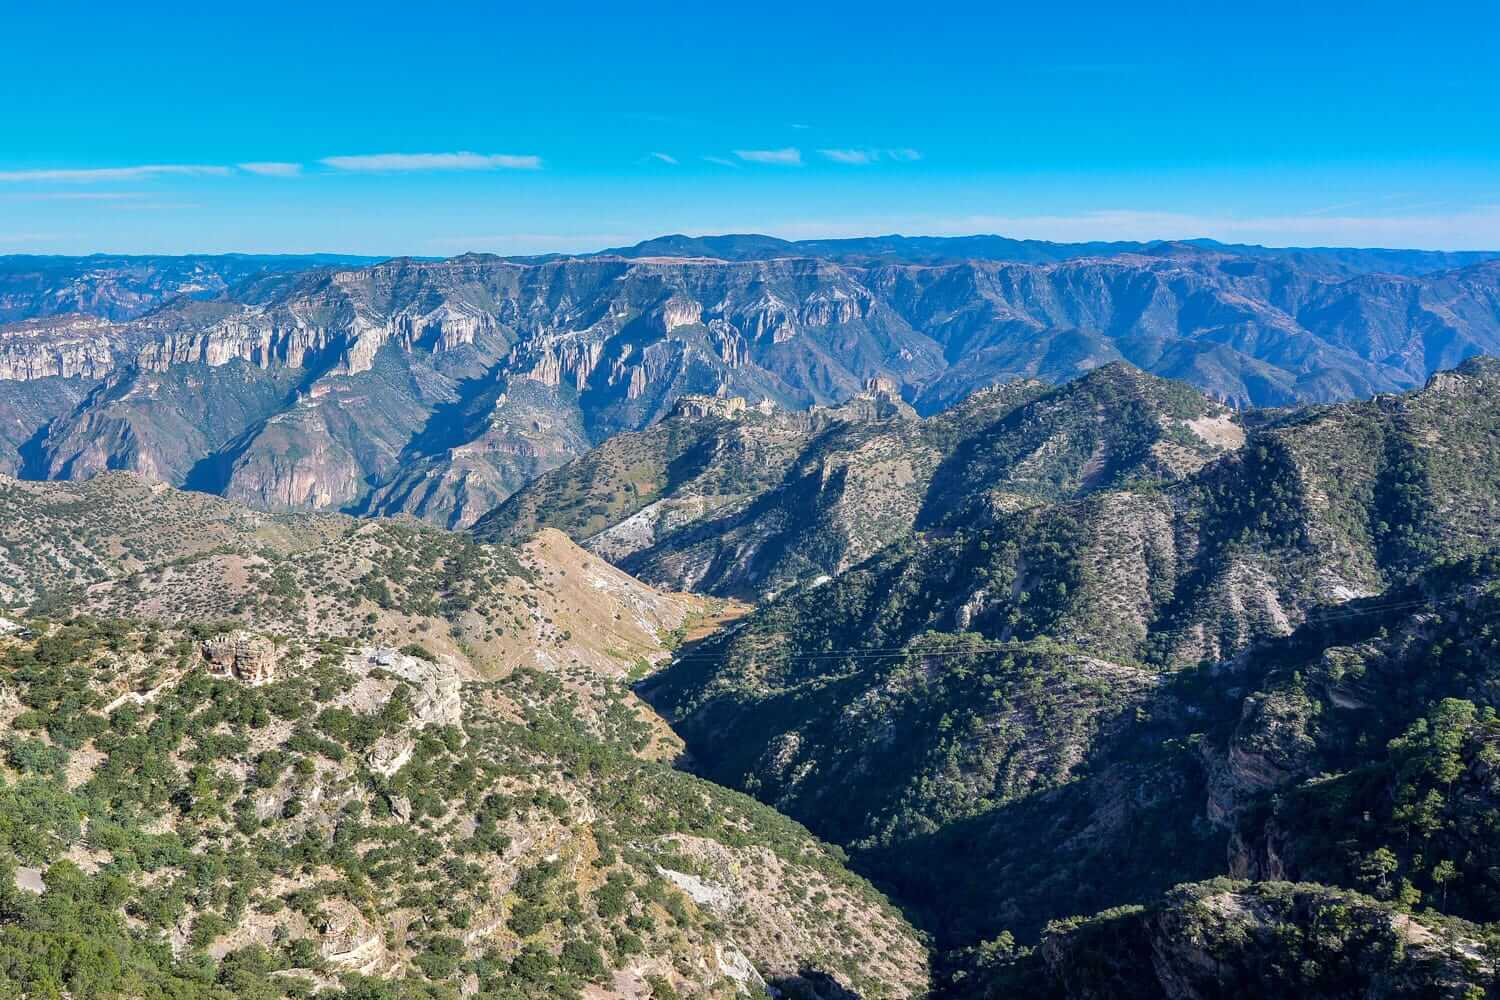 A canyon in North Mexico